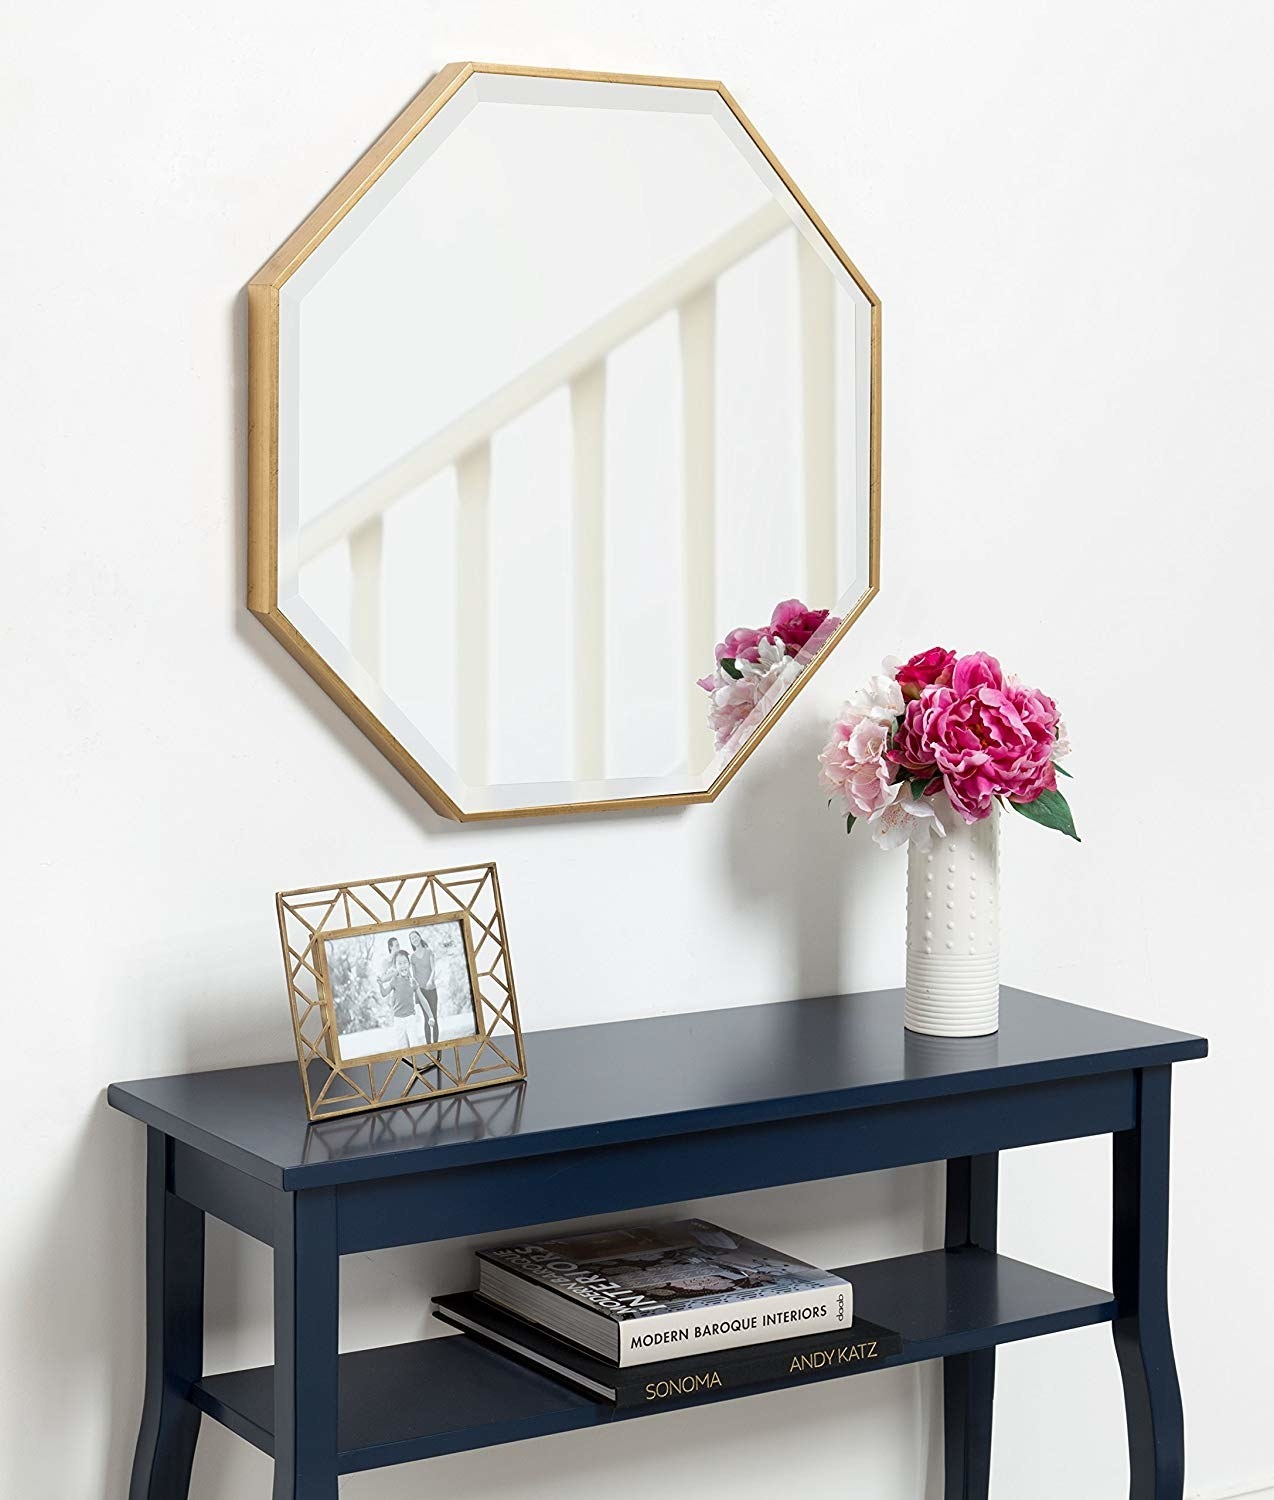 The gold-frame mirror